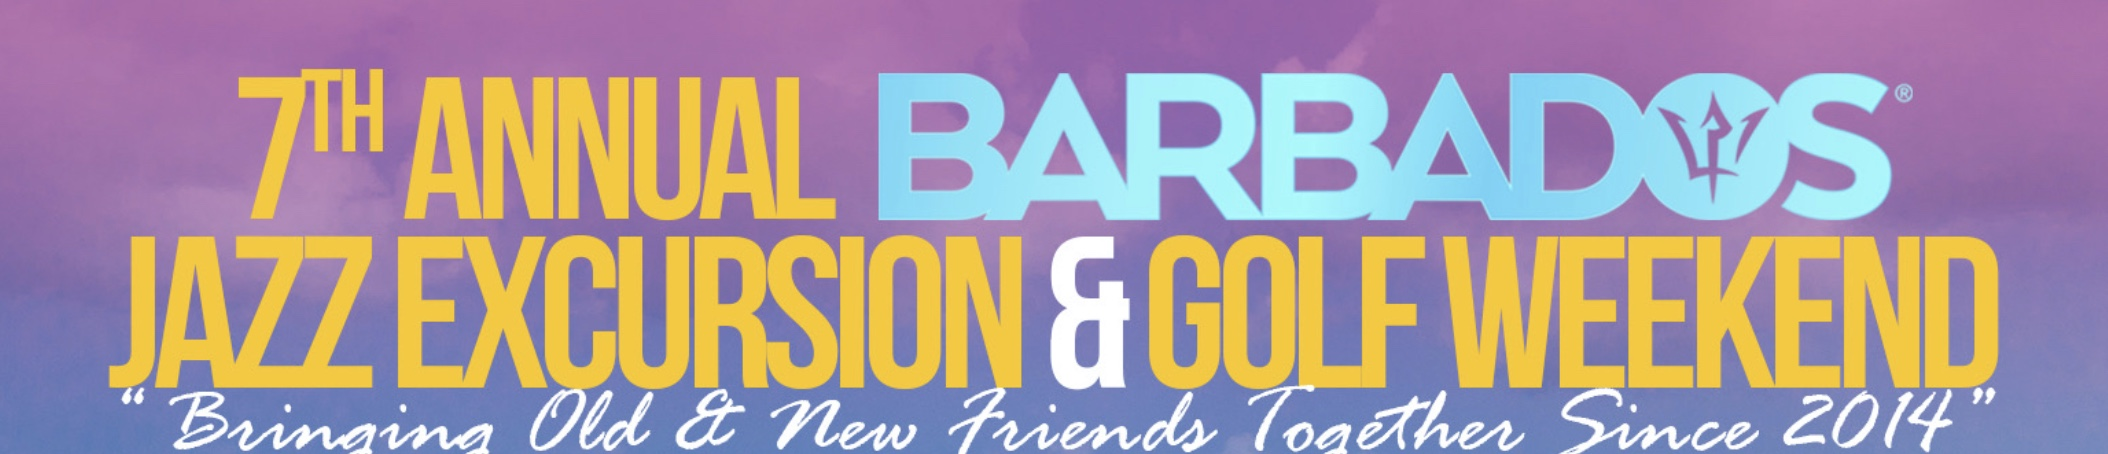 Barbados Jazz Excursion 2021 Tickets